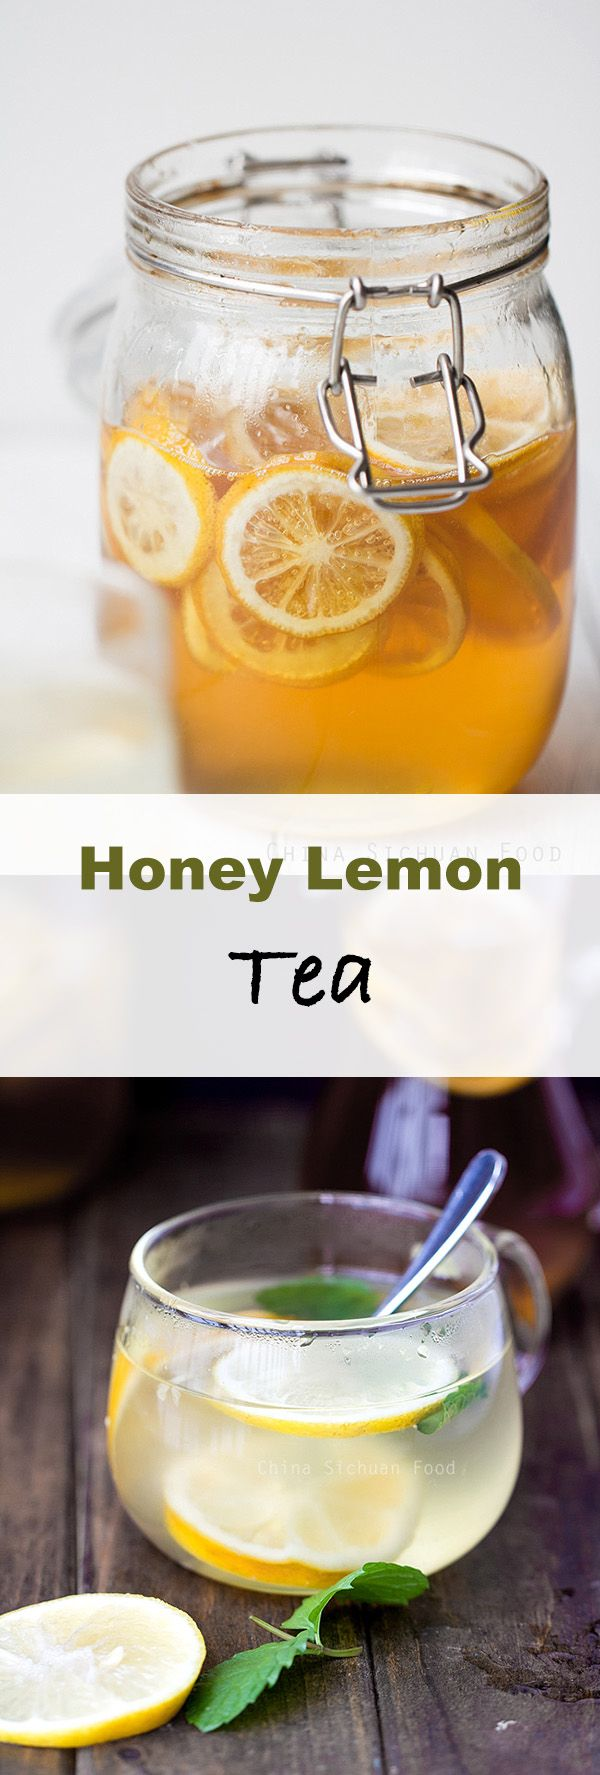 Healthy Honey Lemon Tea-How to Make Lemon Water | ChinaSichuanFood.com